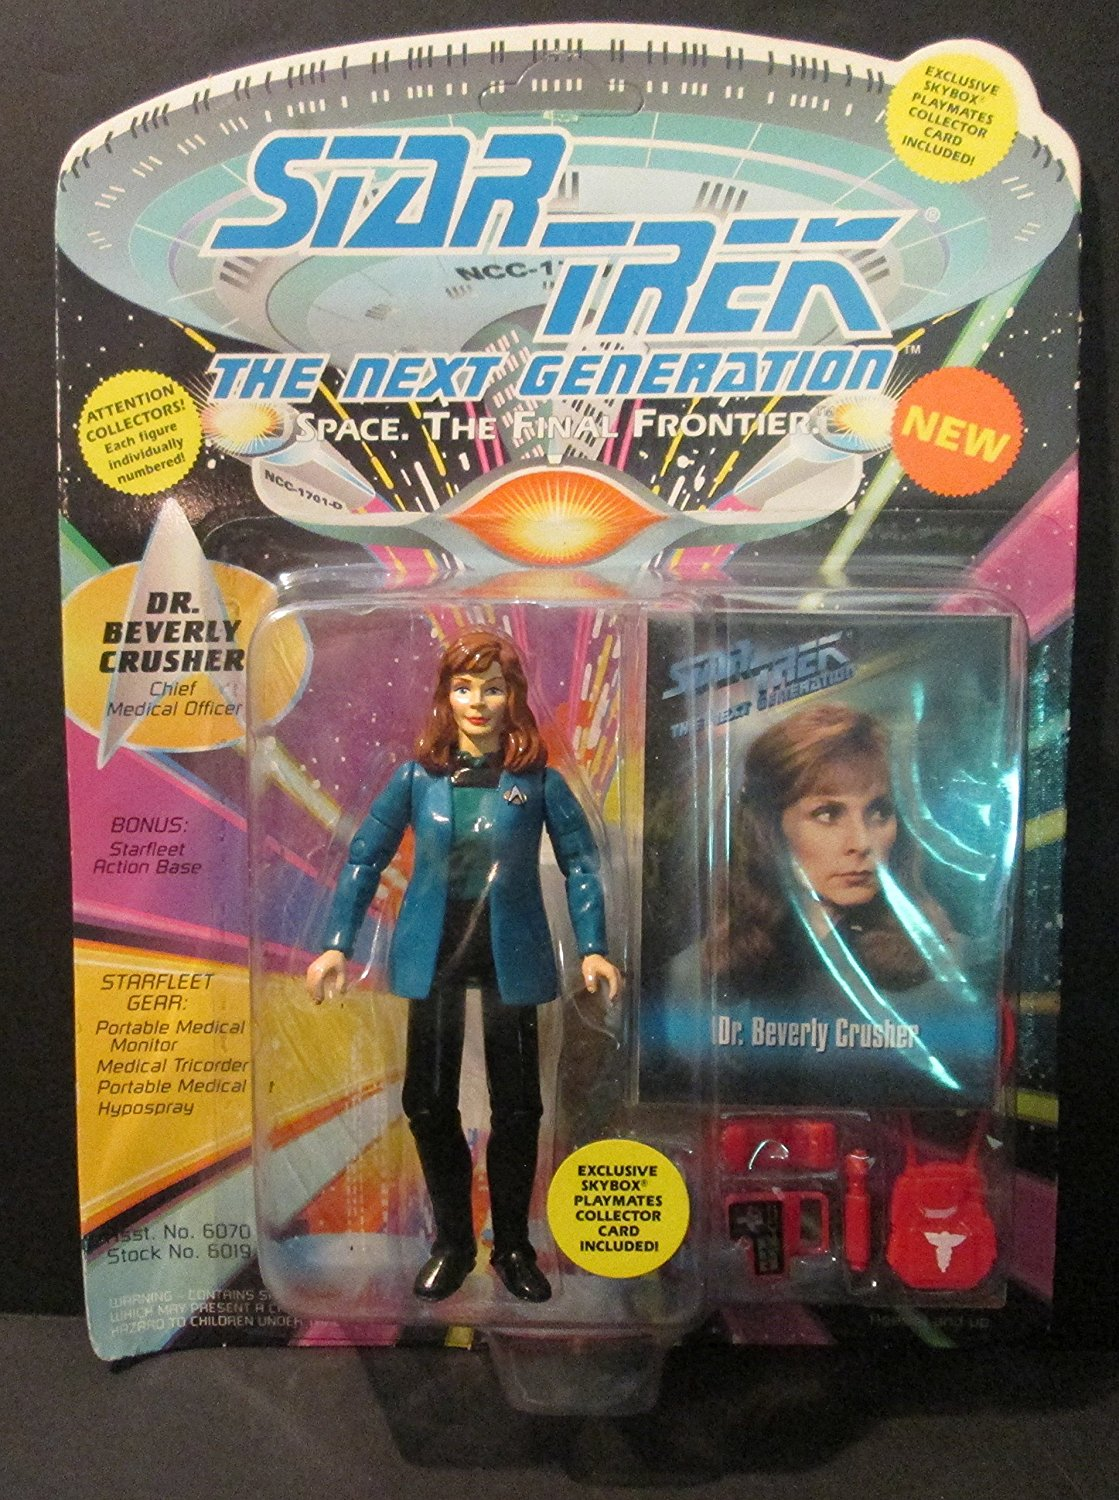 The Next Generation Dr. Beverly Crusher With Special Space Caps Included With Starfleet Gear From Playmates... by